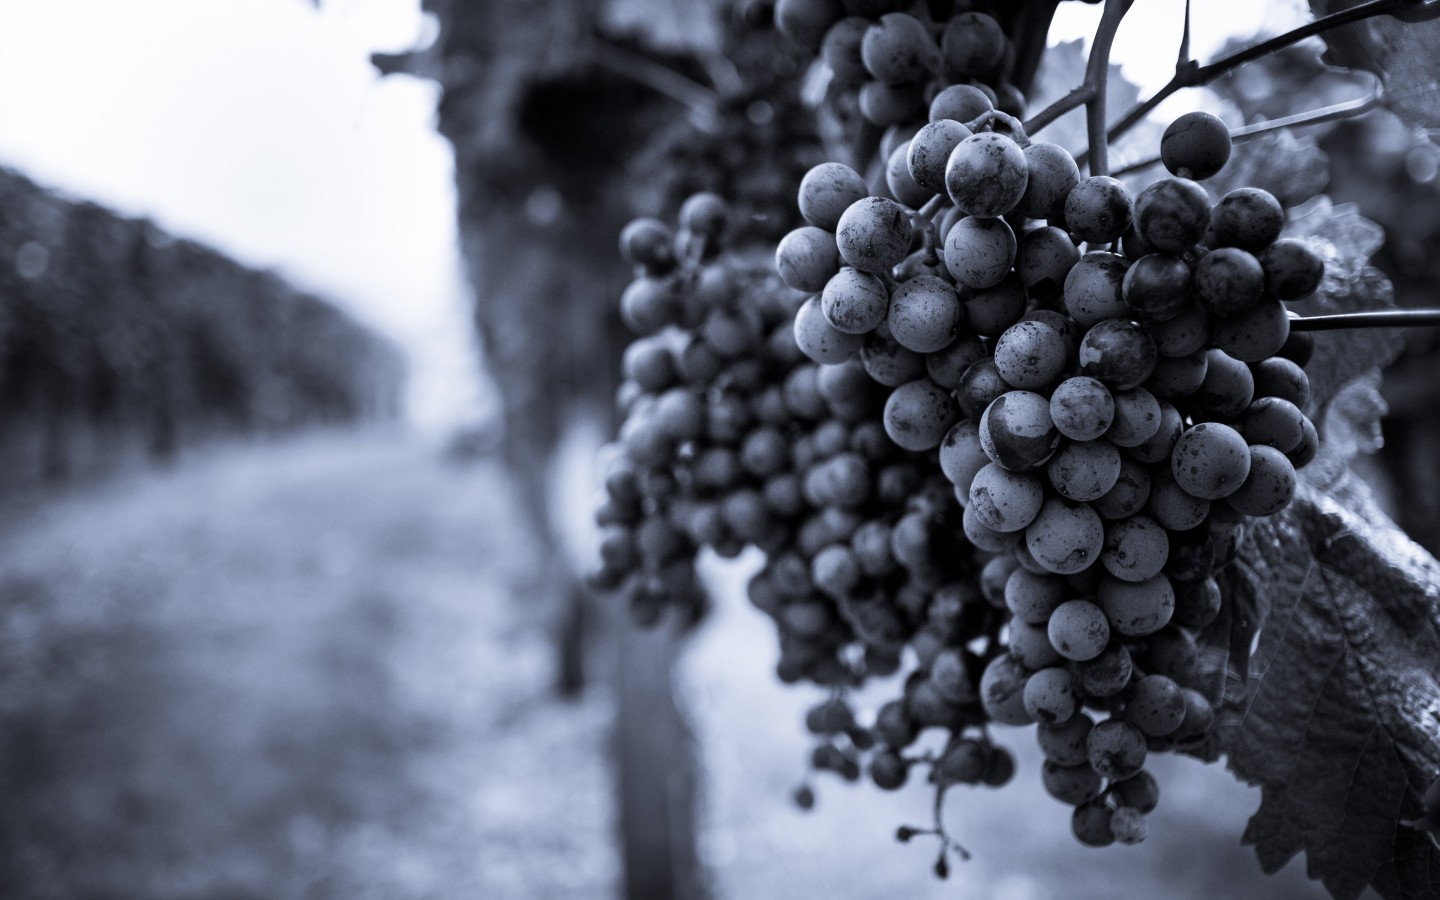 Monochrome Grape Plantation Wallpaper for Desktop 1440x900